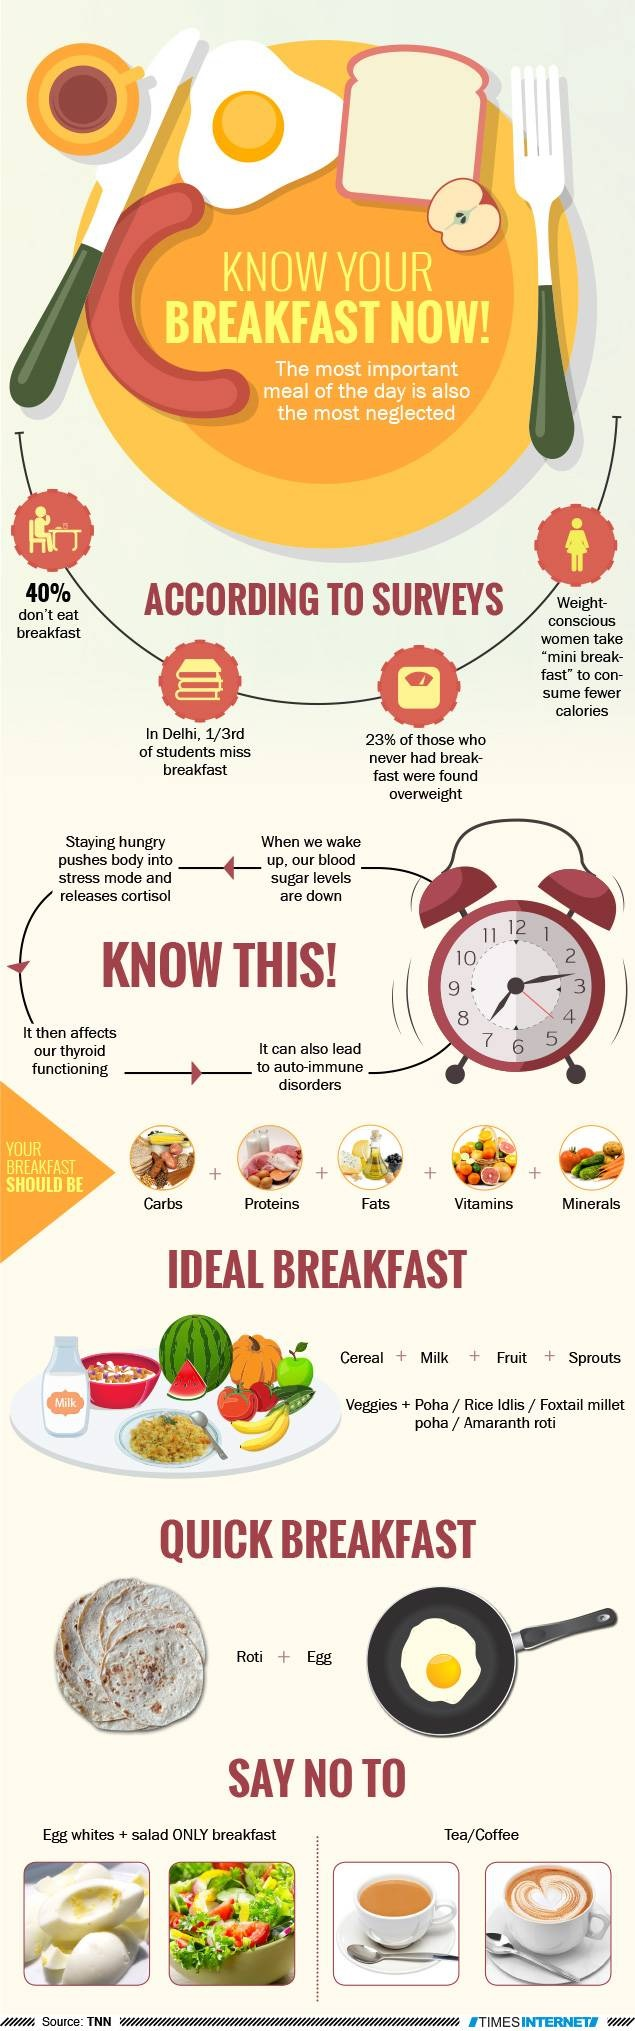 Know Your Breakfast